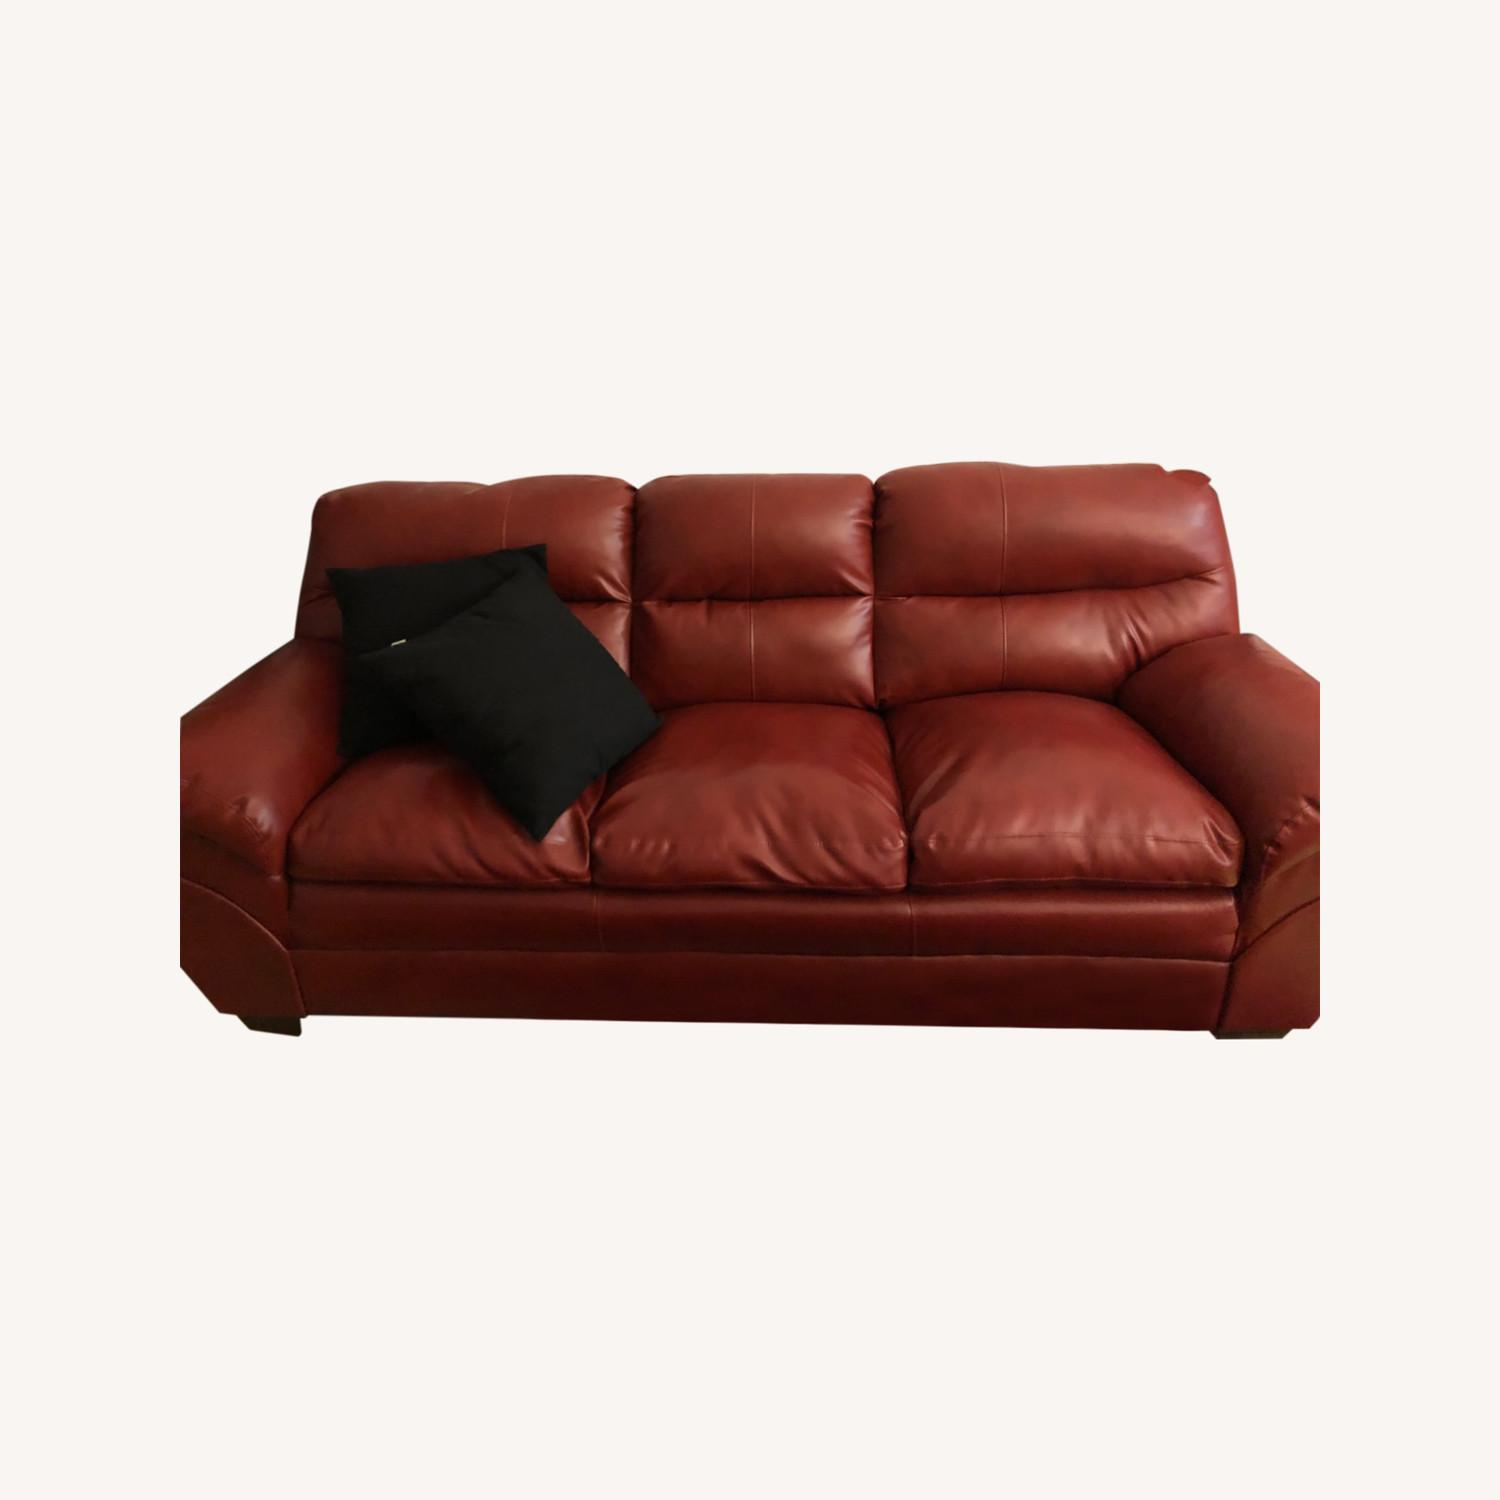 Claudio Rayes Red Couch - image-0